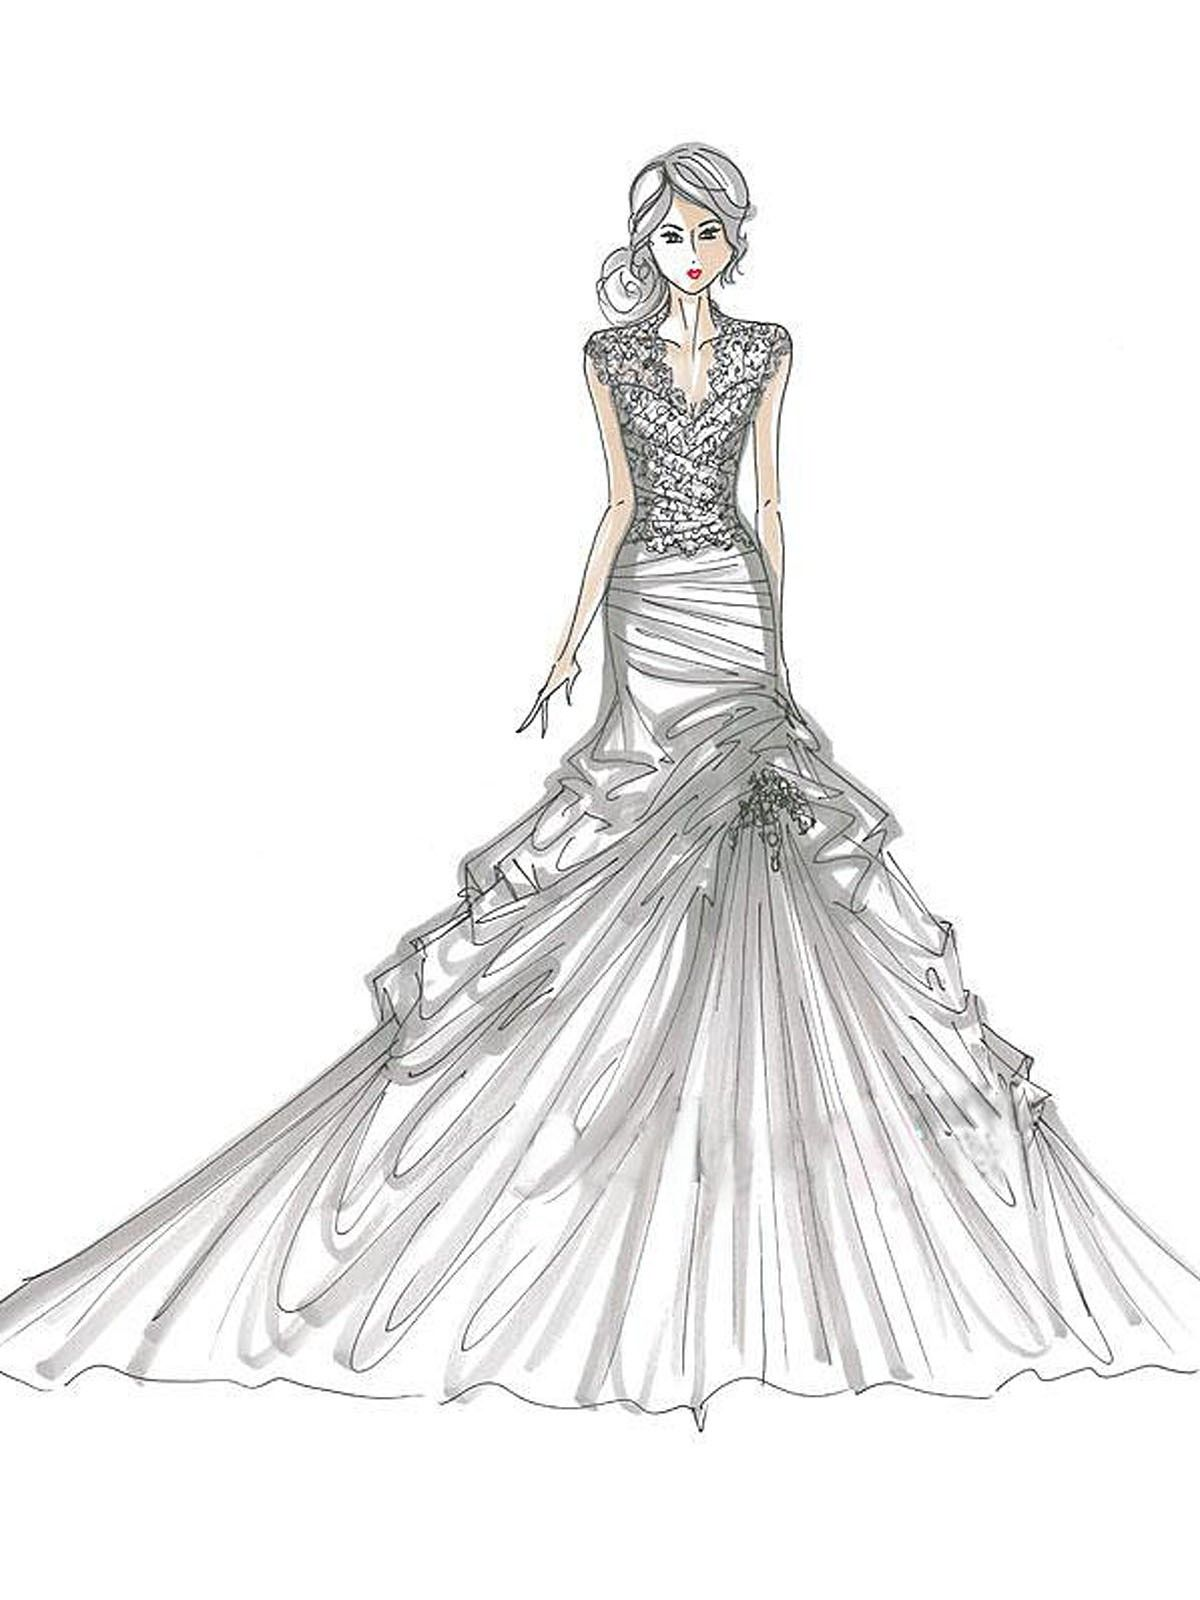 Printable Coloring Pages Of Fashion Clothing